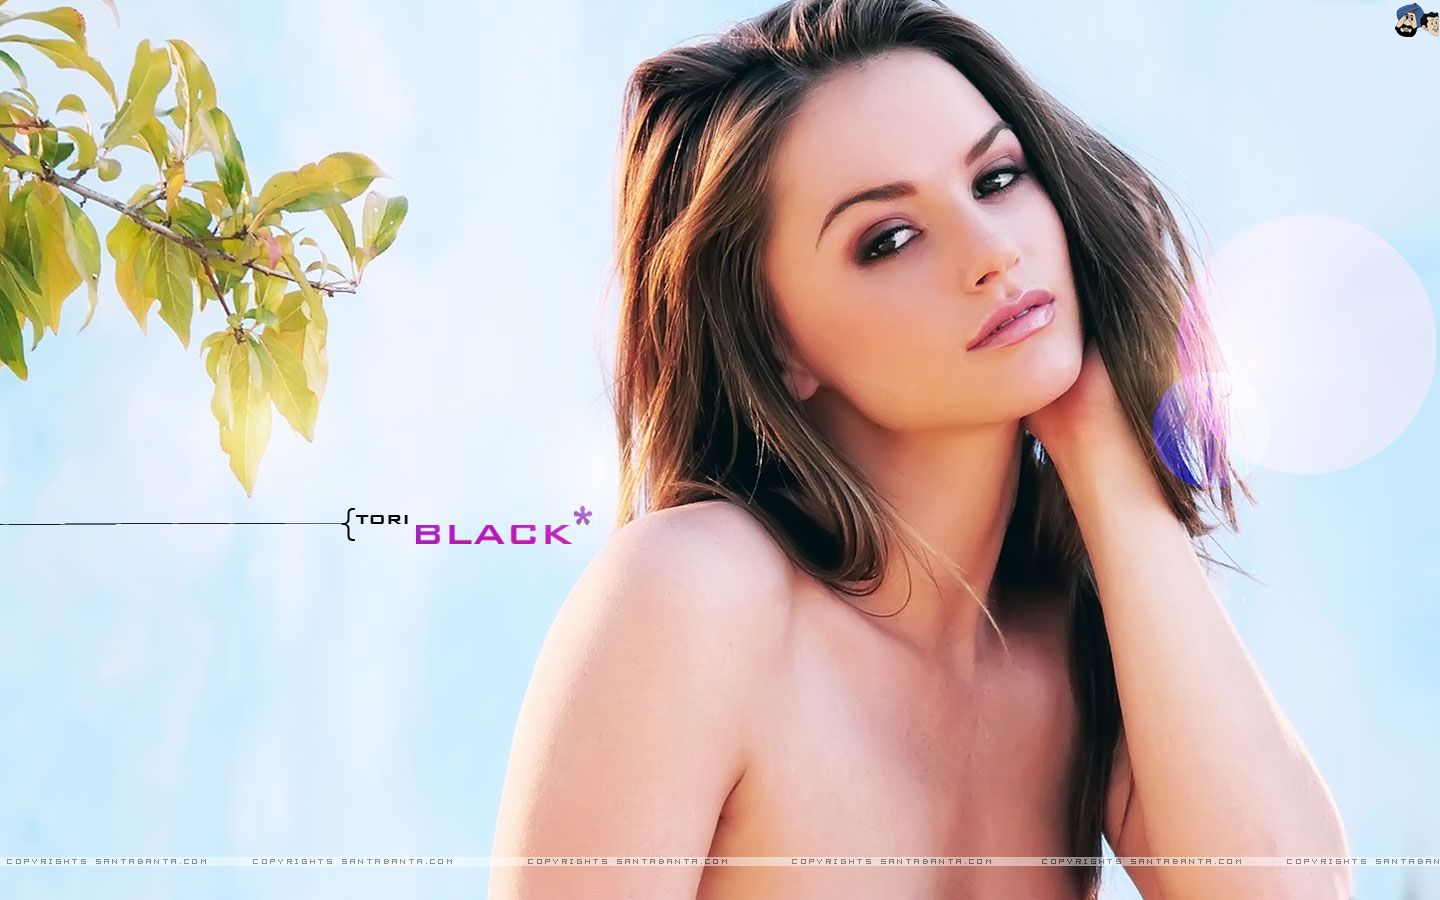 Pron Girl Wallpaper Good tori black | tori black wallpapers | tb | pinterest | black